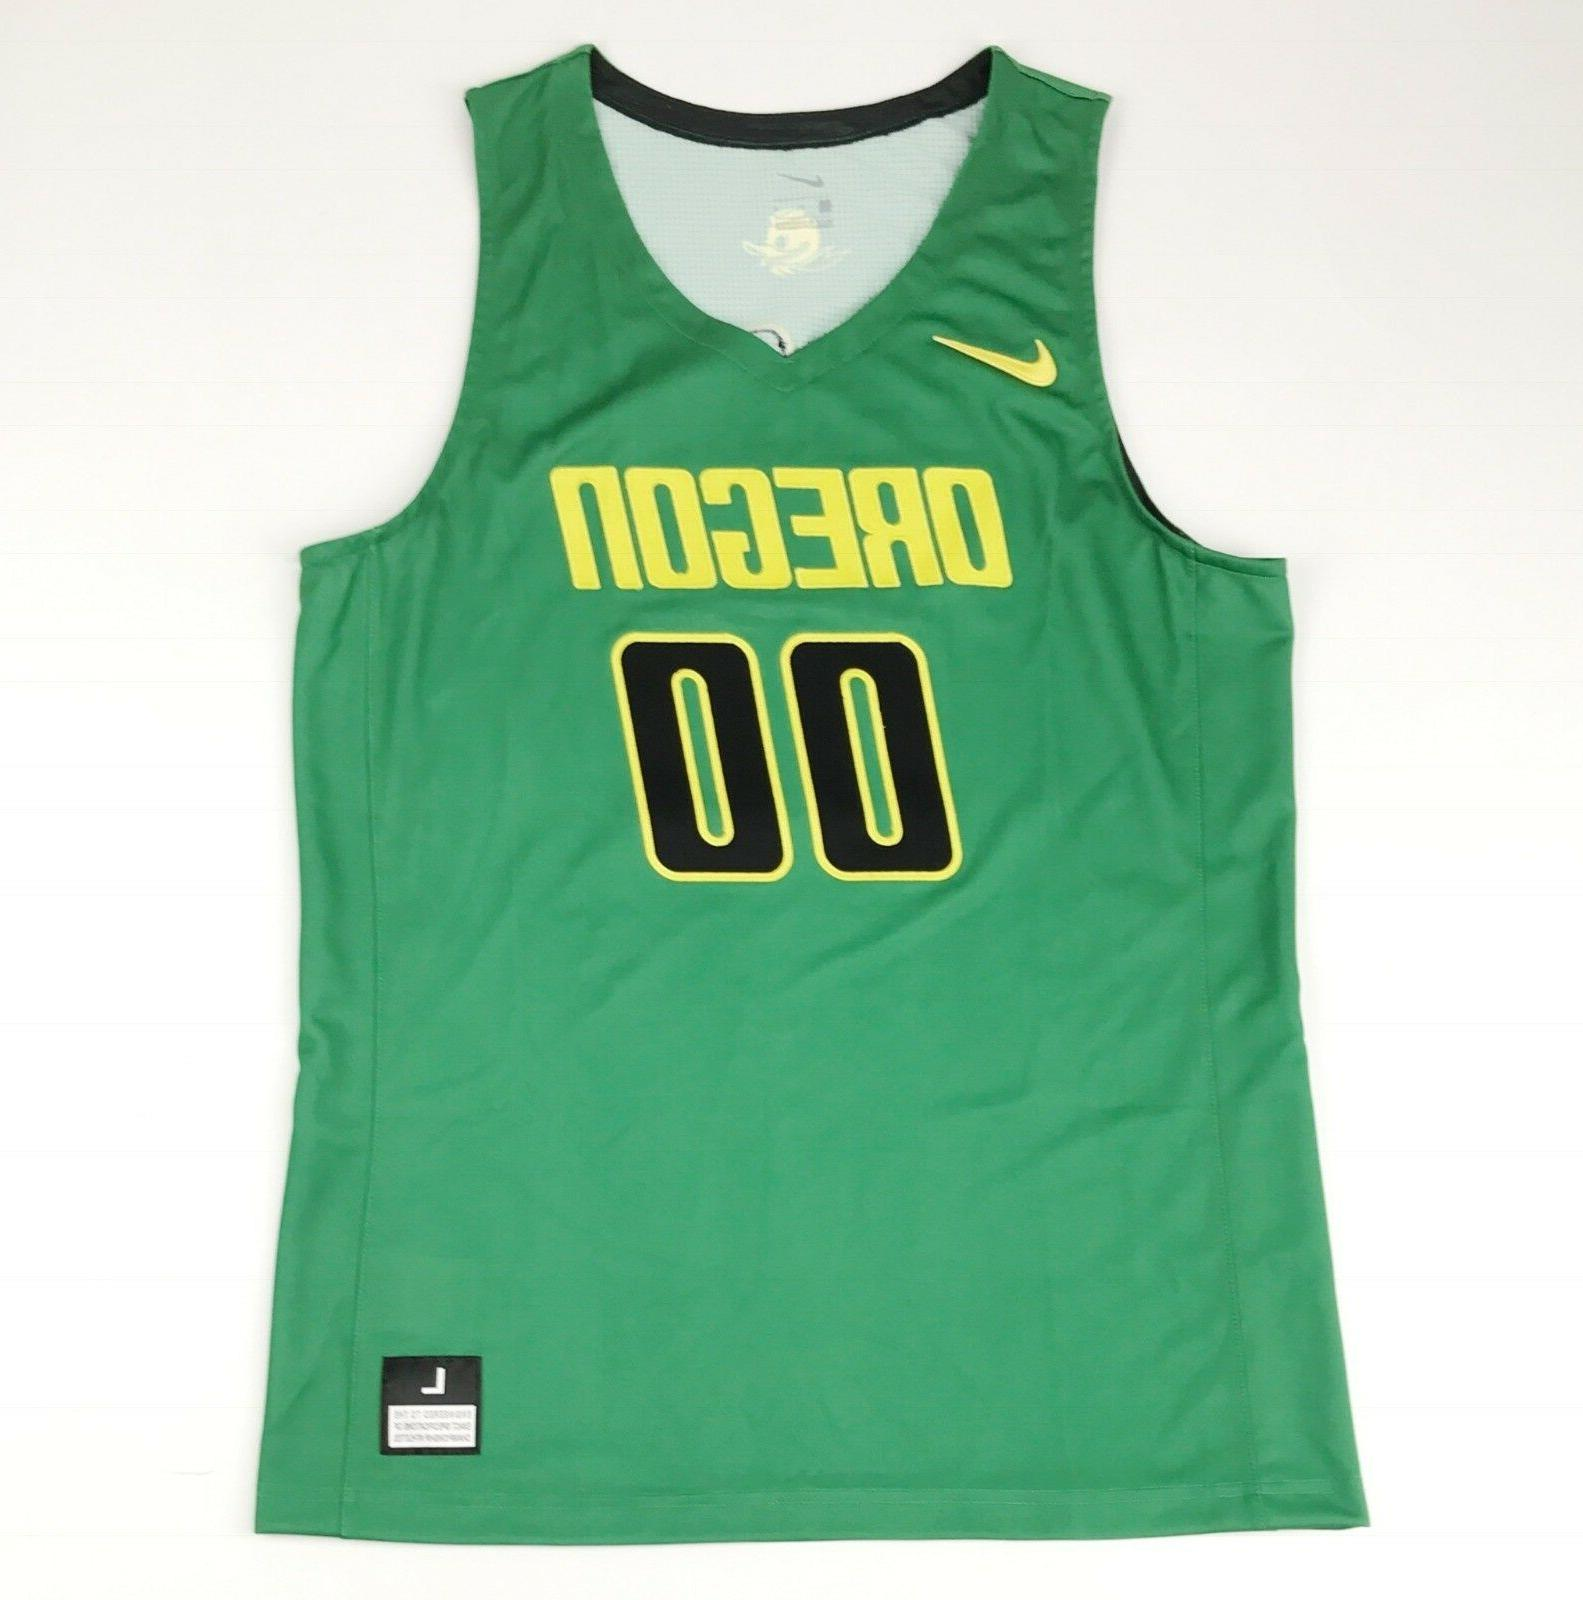 new unlimited oregon ducks basketball game jersey